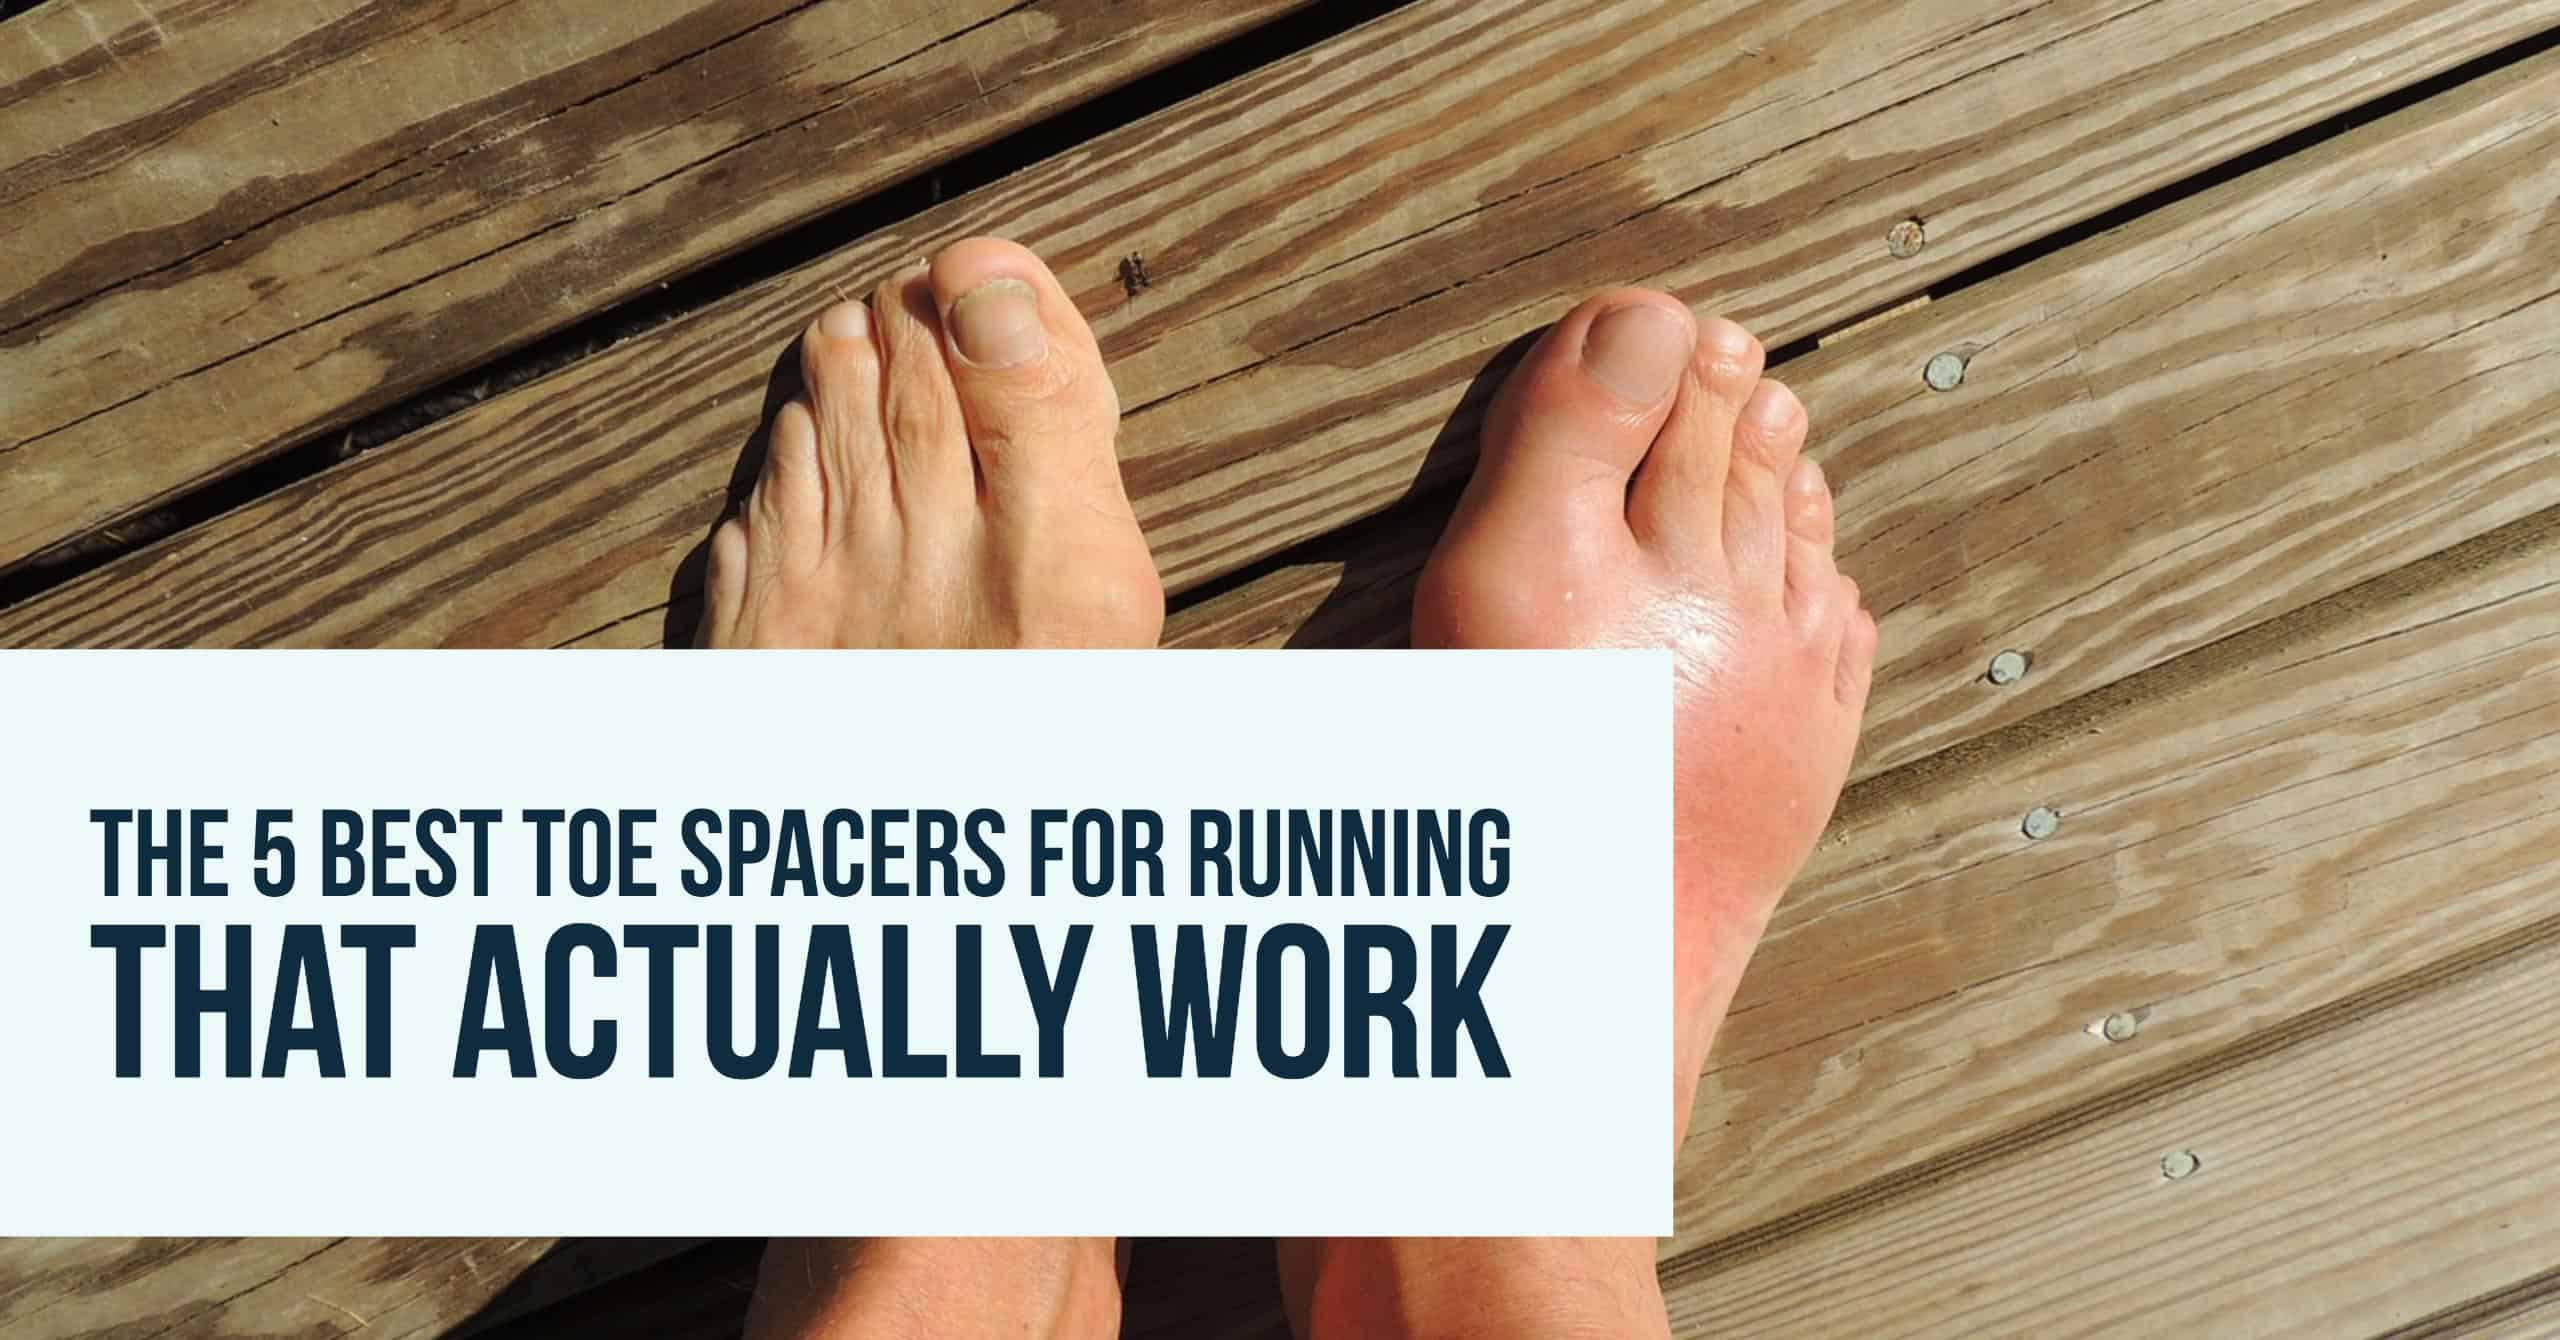 The 5 Best Toe Spacers for Running That Actually Work